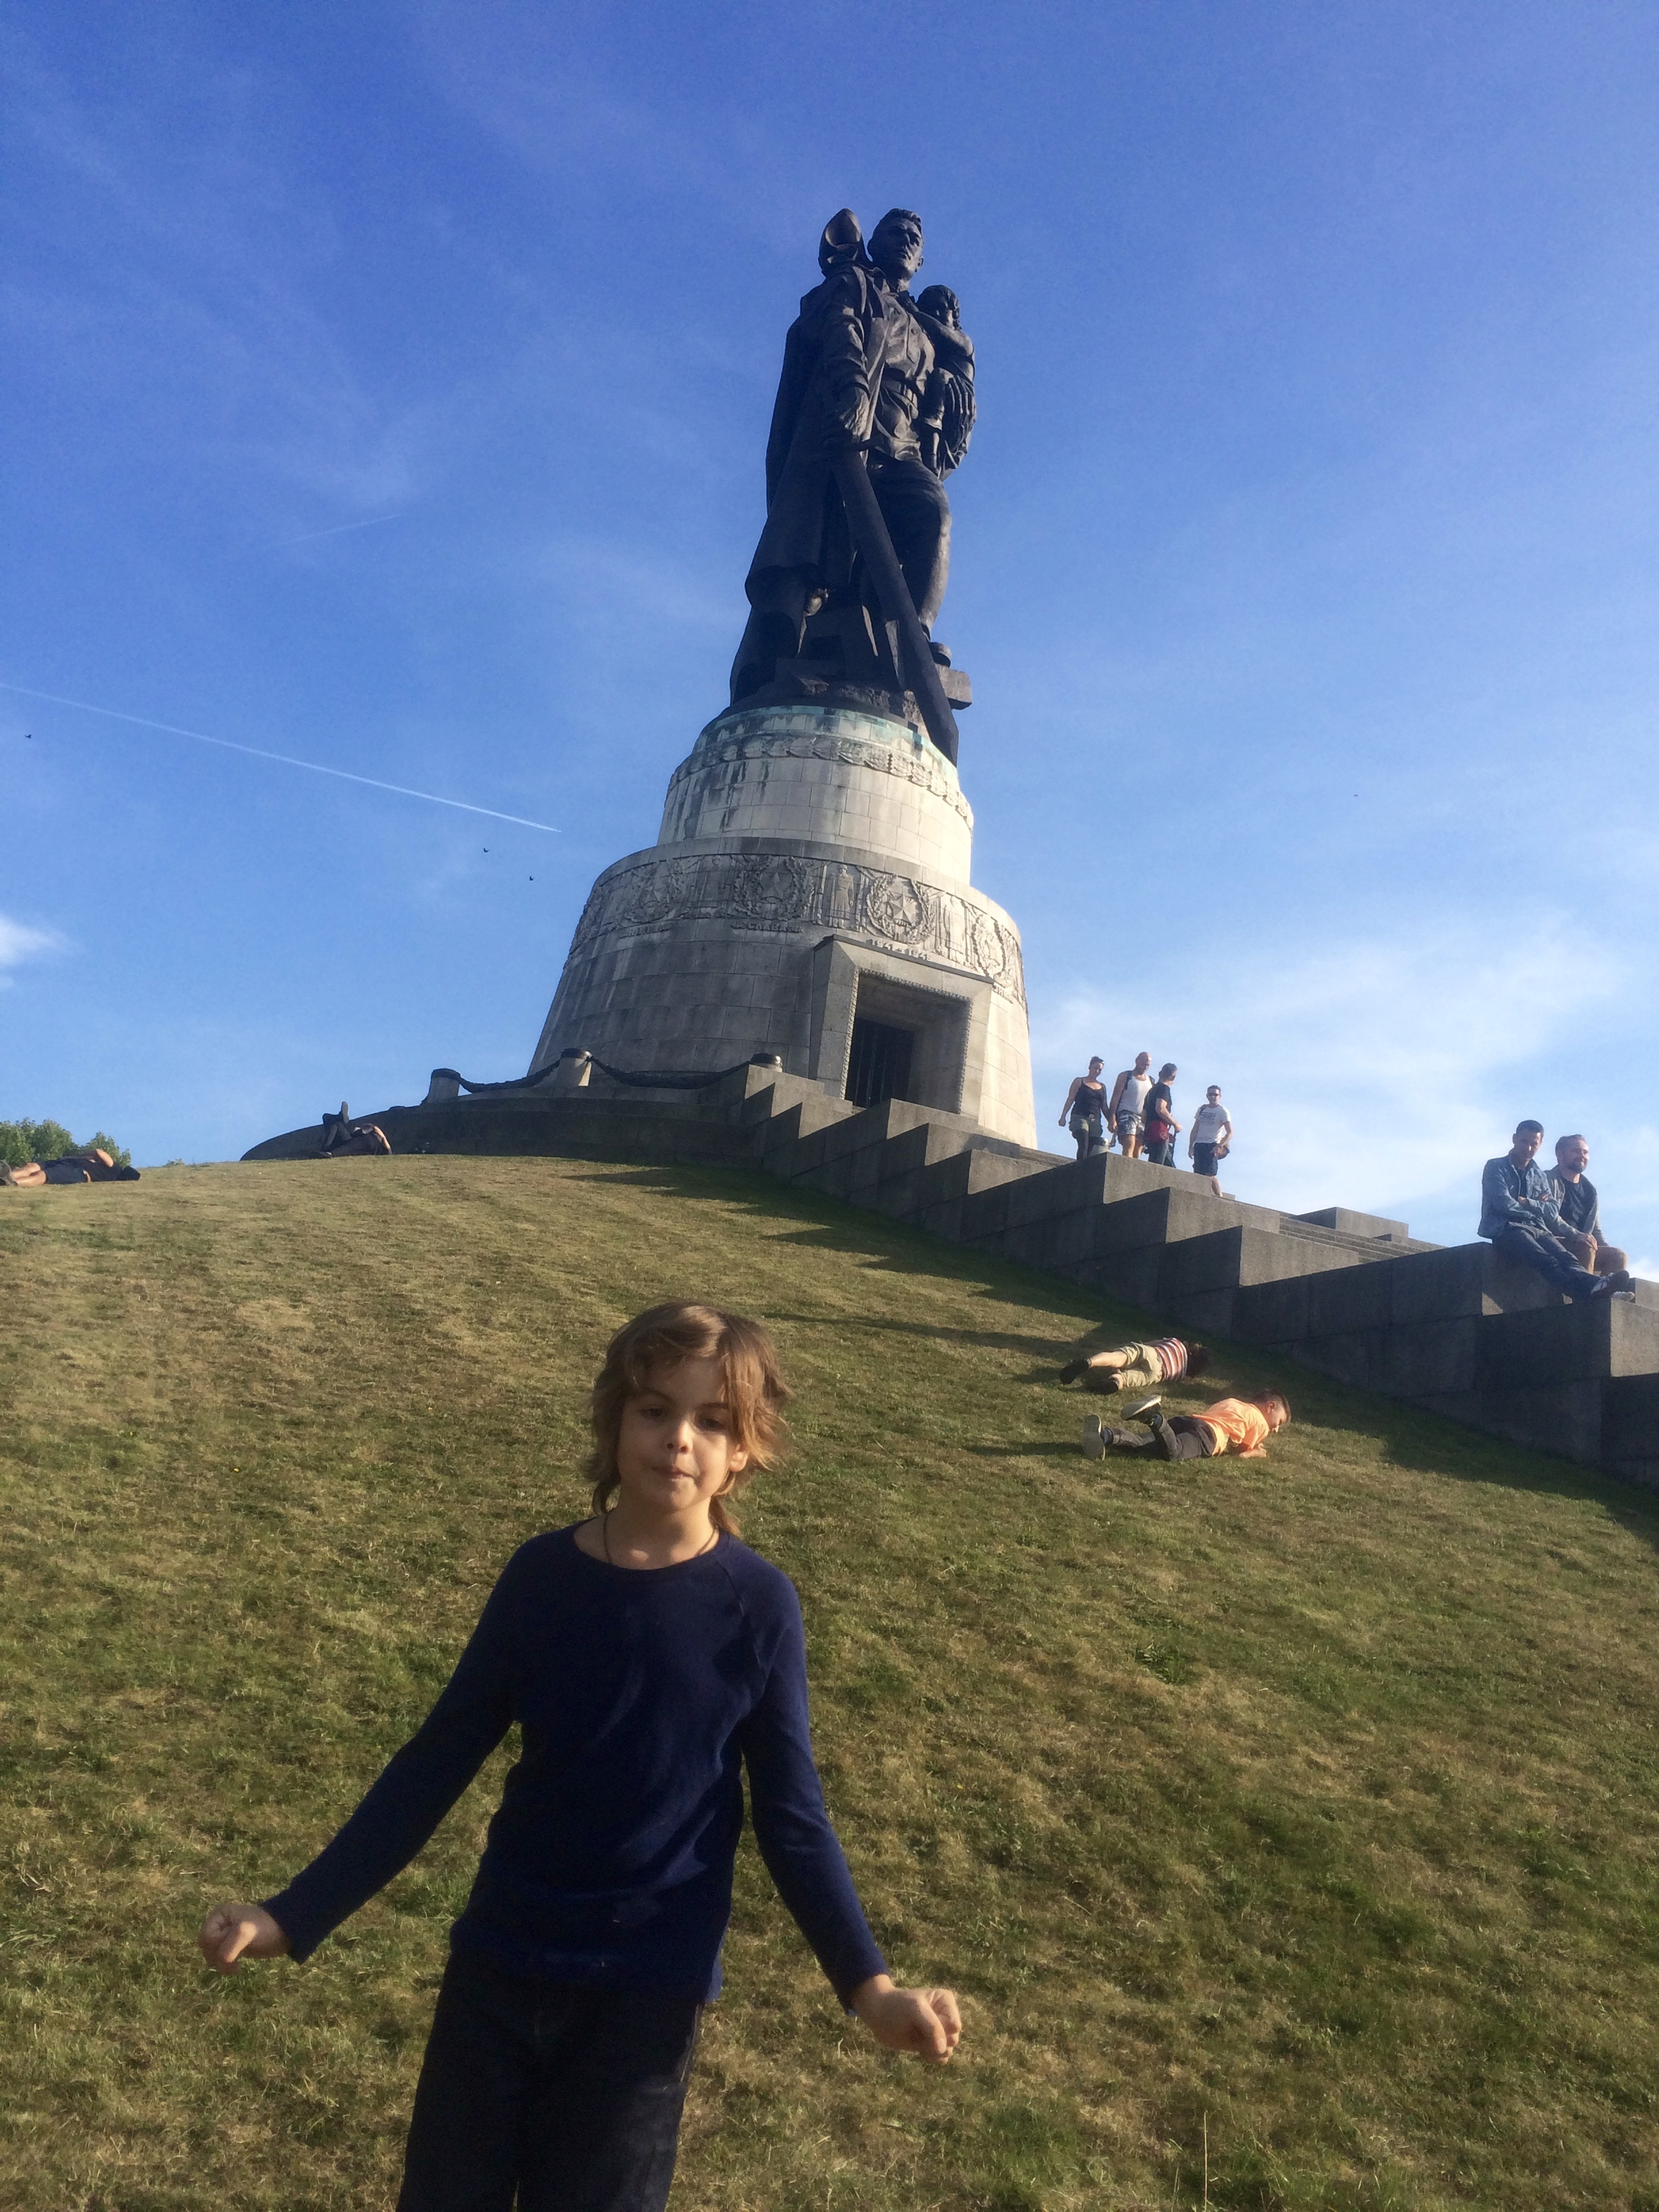 This is the soviet war memorial, this is dedicated to all the russians that died fighting berlin in the second world war. I started to roll down the hill, but it was spikey, so I had to get it out of my shirt.